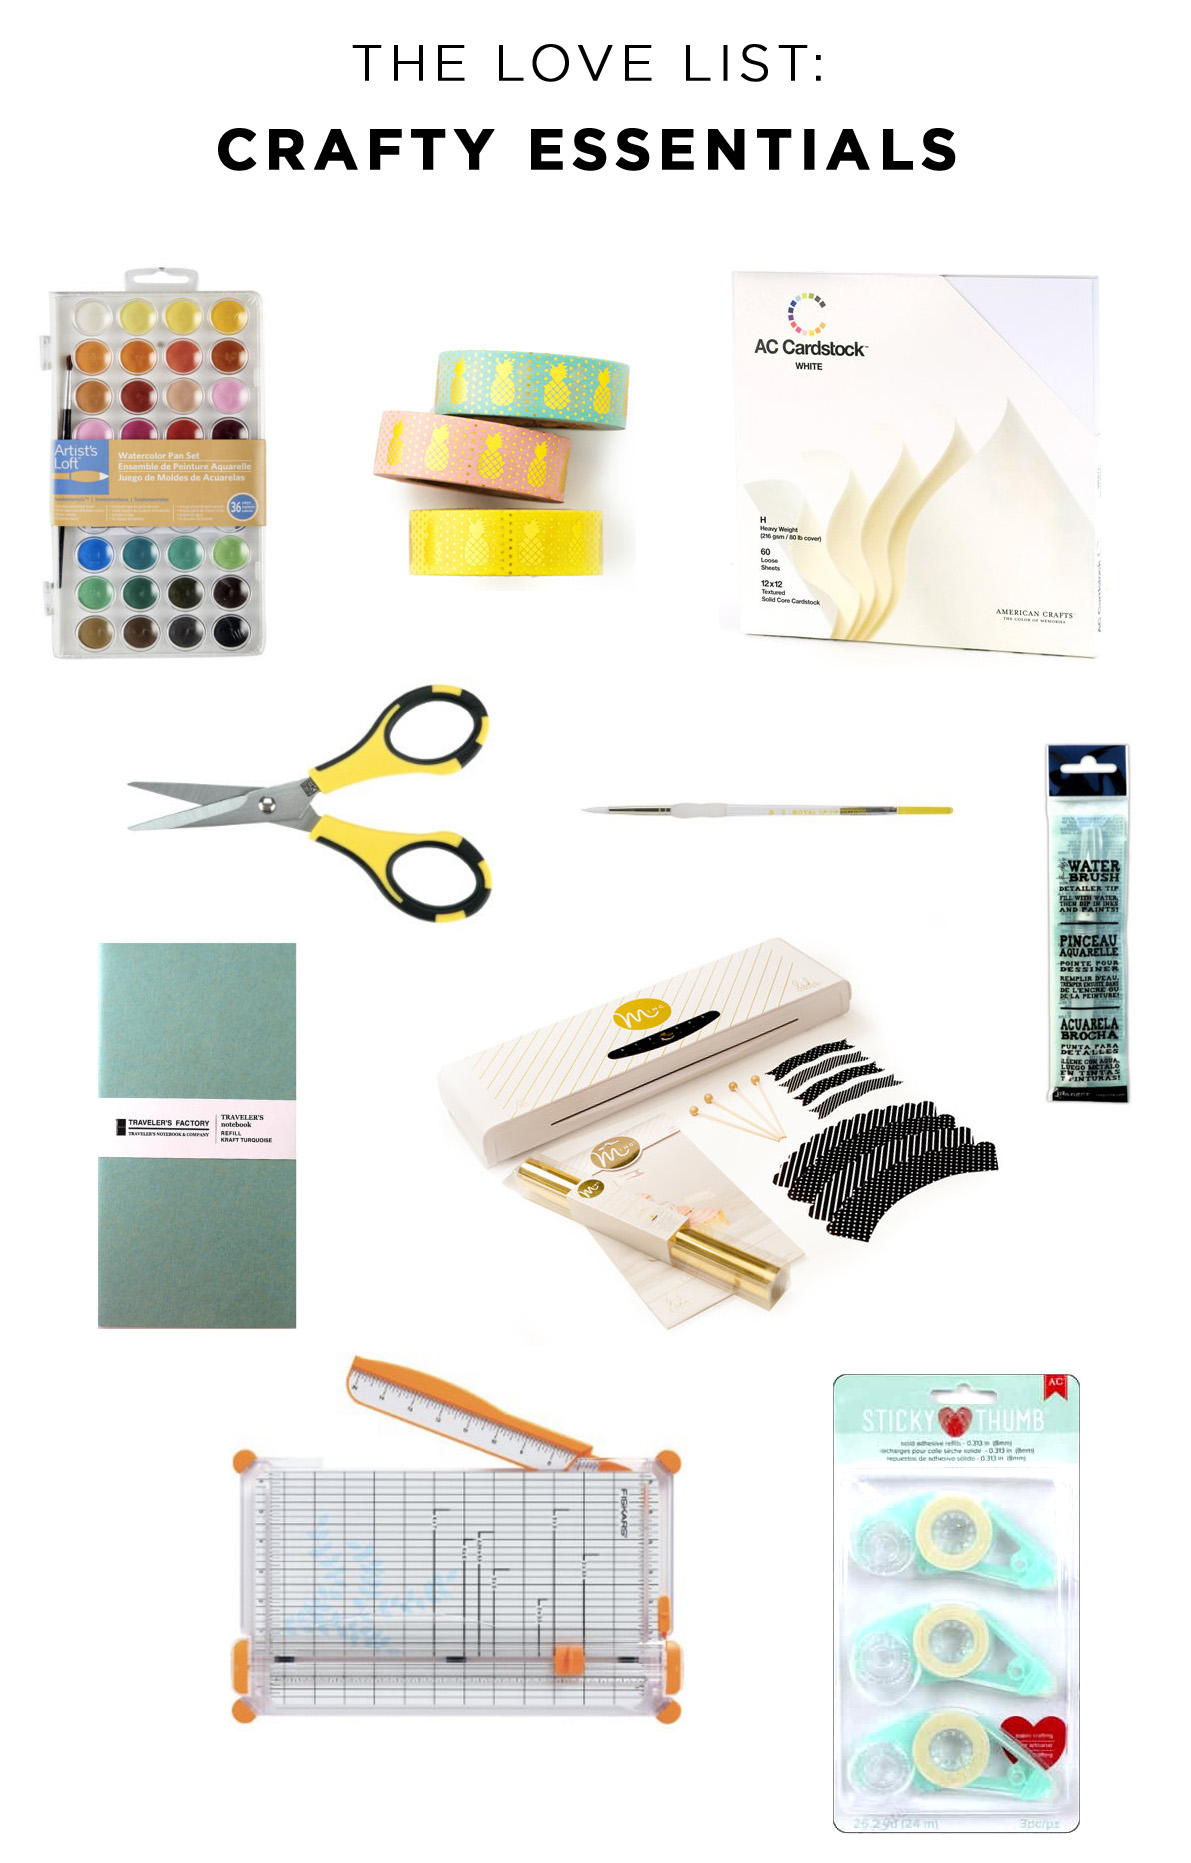 The Love List: Crafty Essentials | Amy Tangerine